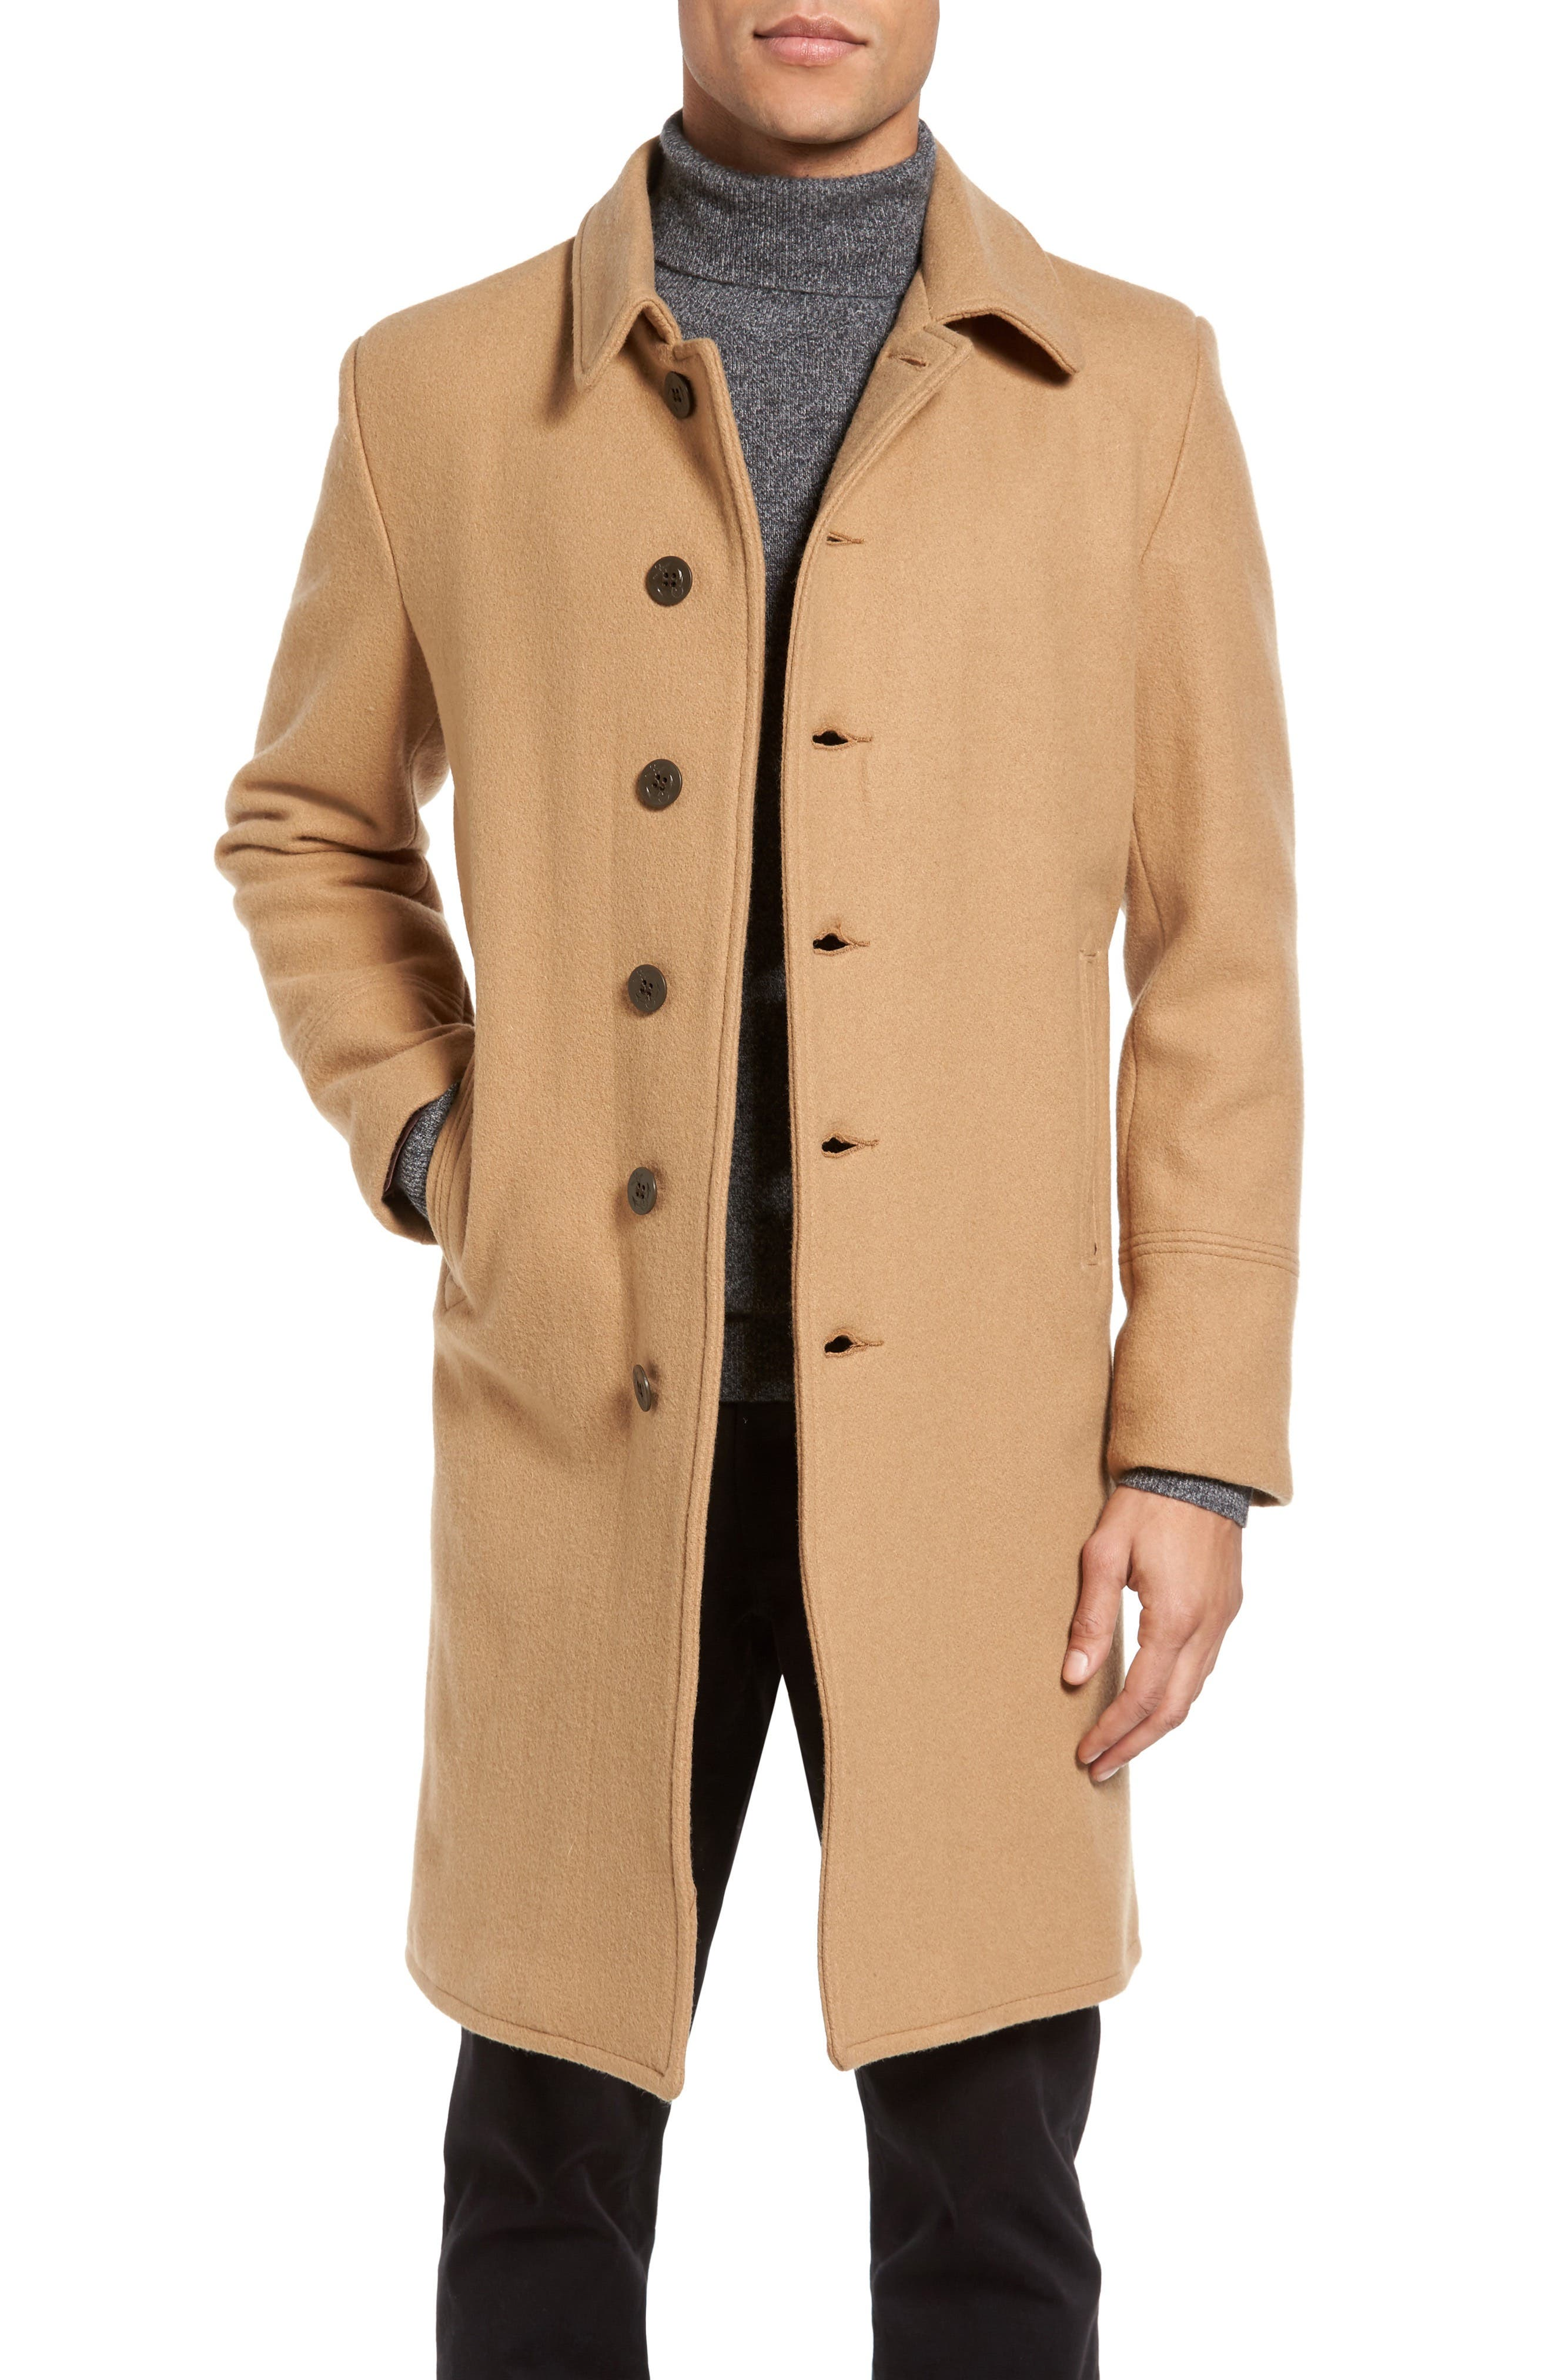 SCHOTT NYC, Wool Blend Officer's Coat, Main thumbnail 1, color, 200